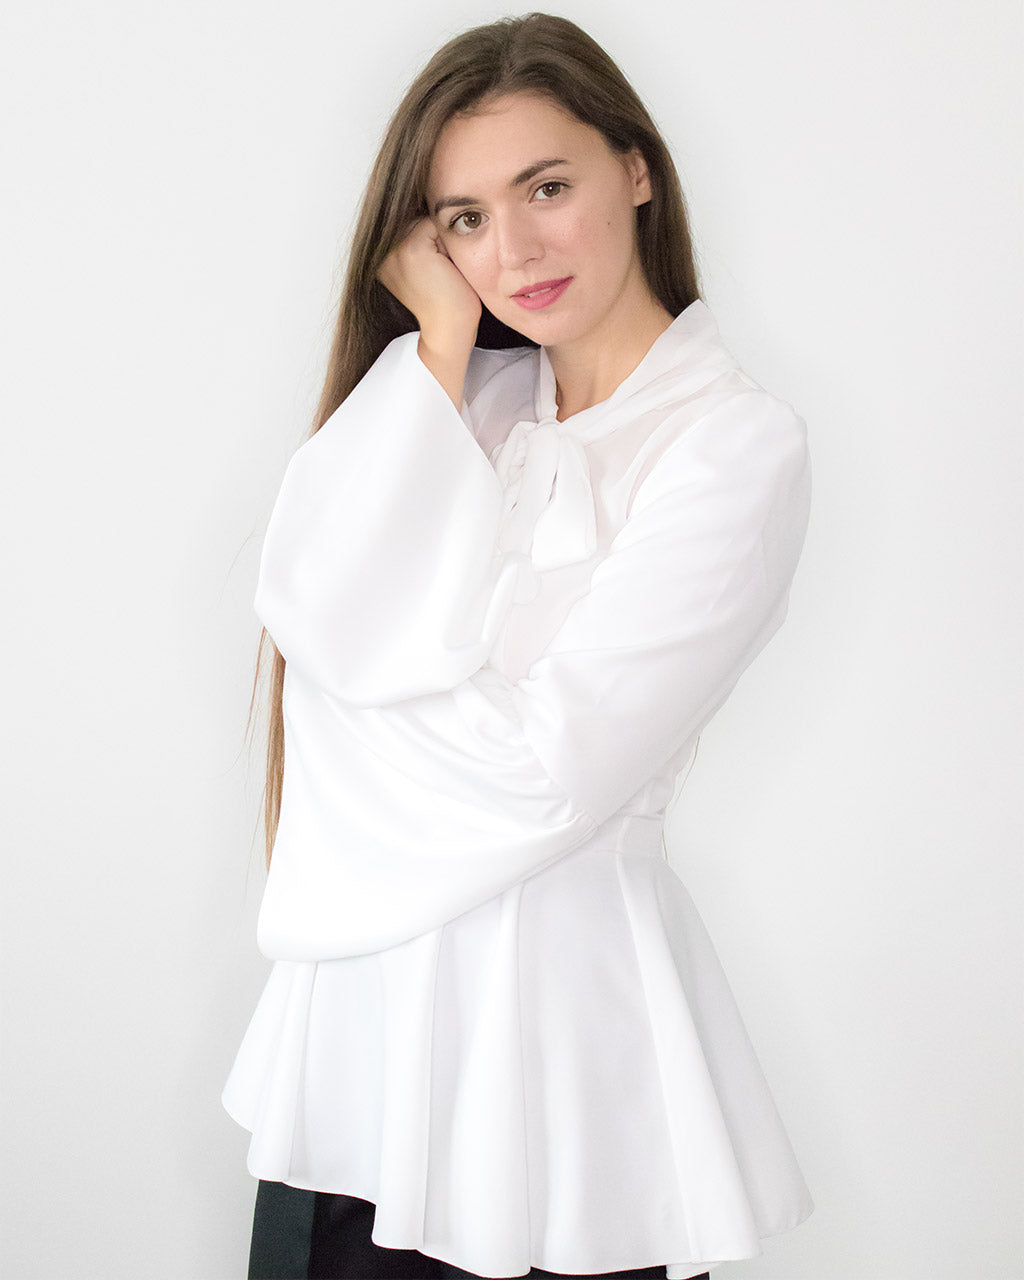 Ethical designer white peplum bell sleeves top with bow ADKN fit & flare occasion evening blouse made from recycled PET UK